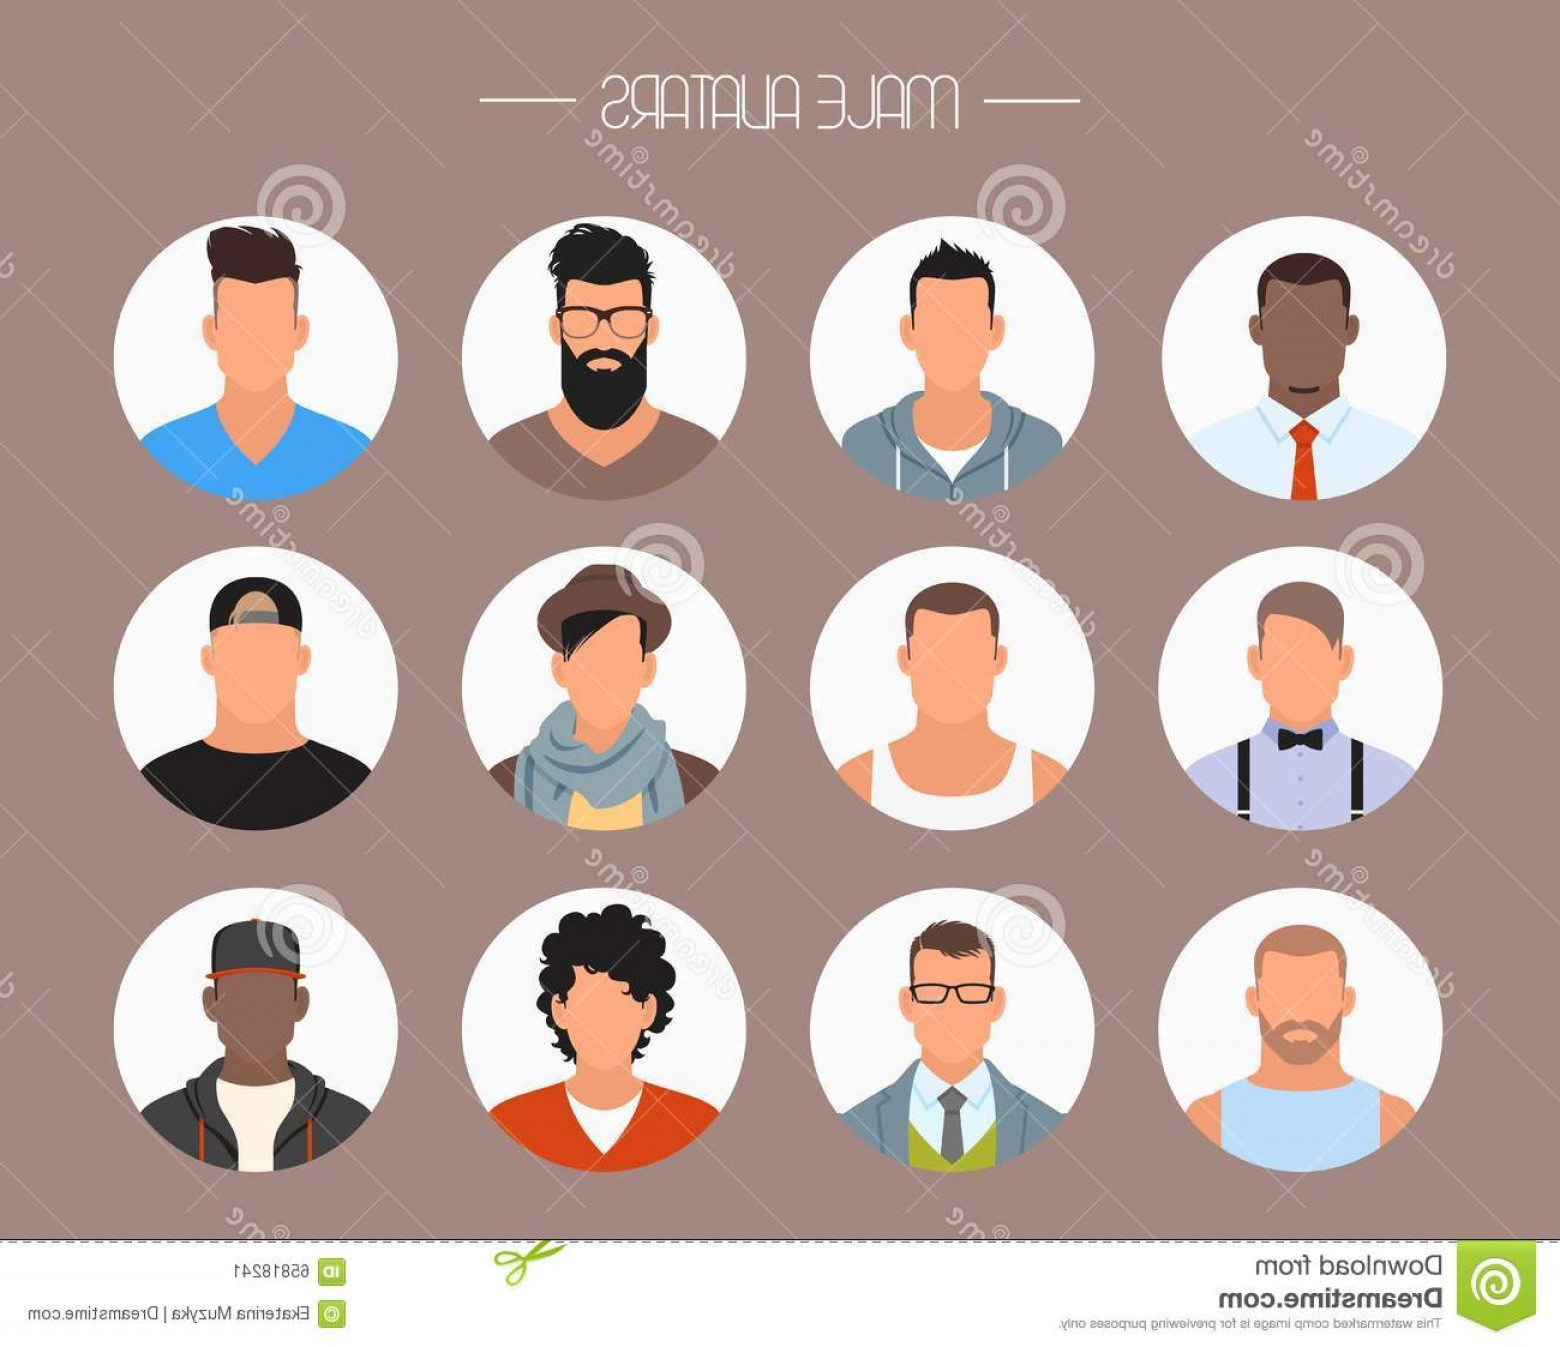 Vector Styles: Stock Illustration Male Avatar Icons Vector Set People Characters Flat Style Faces Different Styles Nationalities Design Elements Image